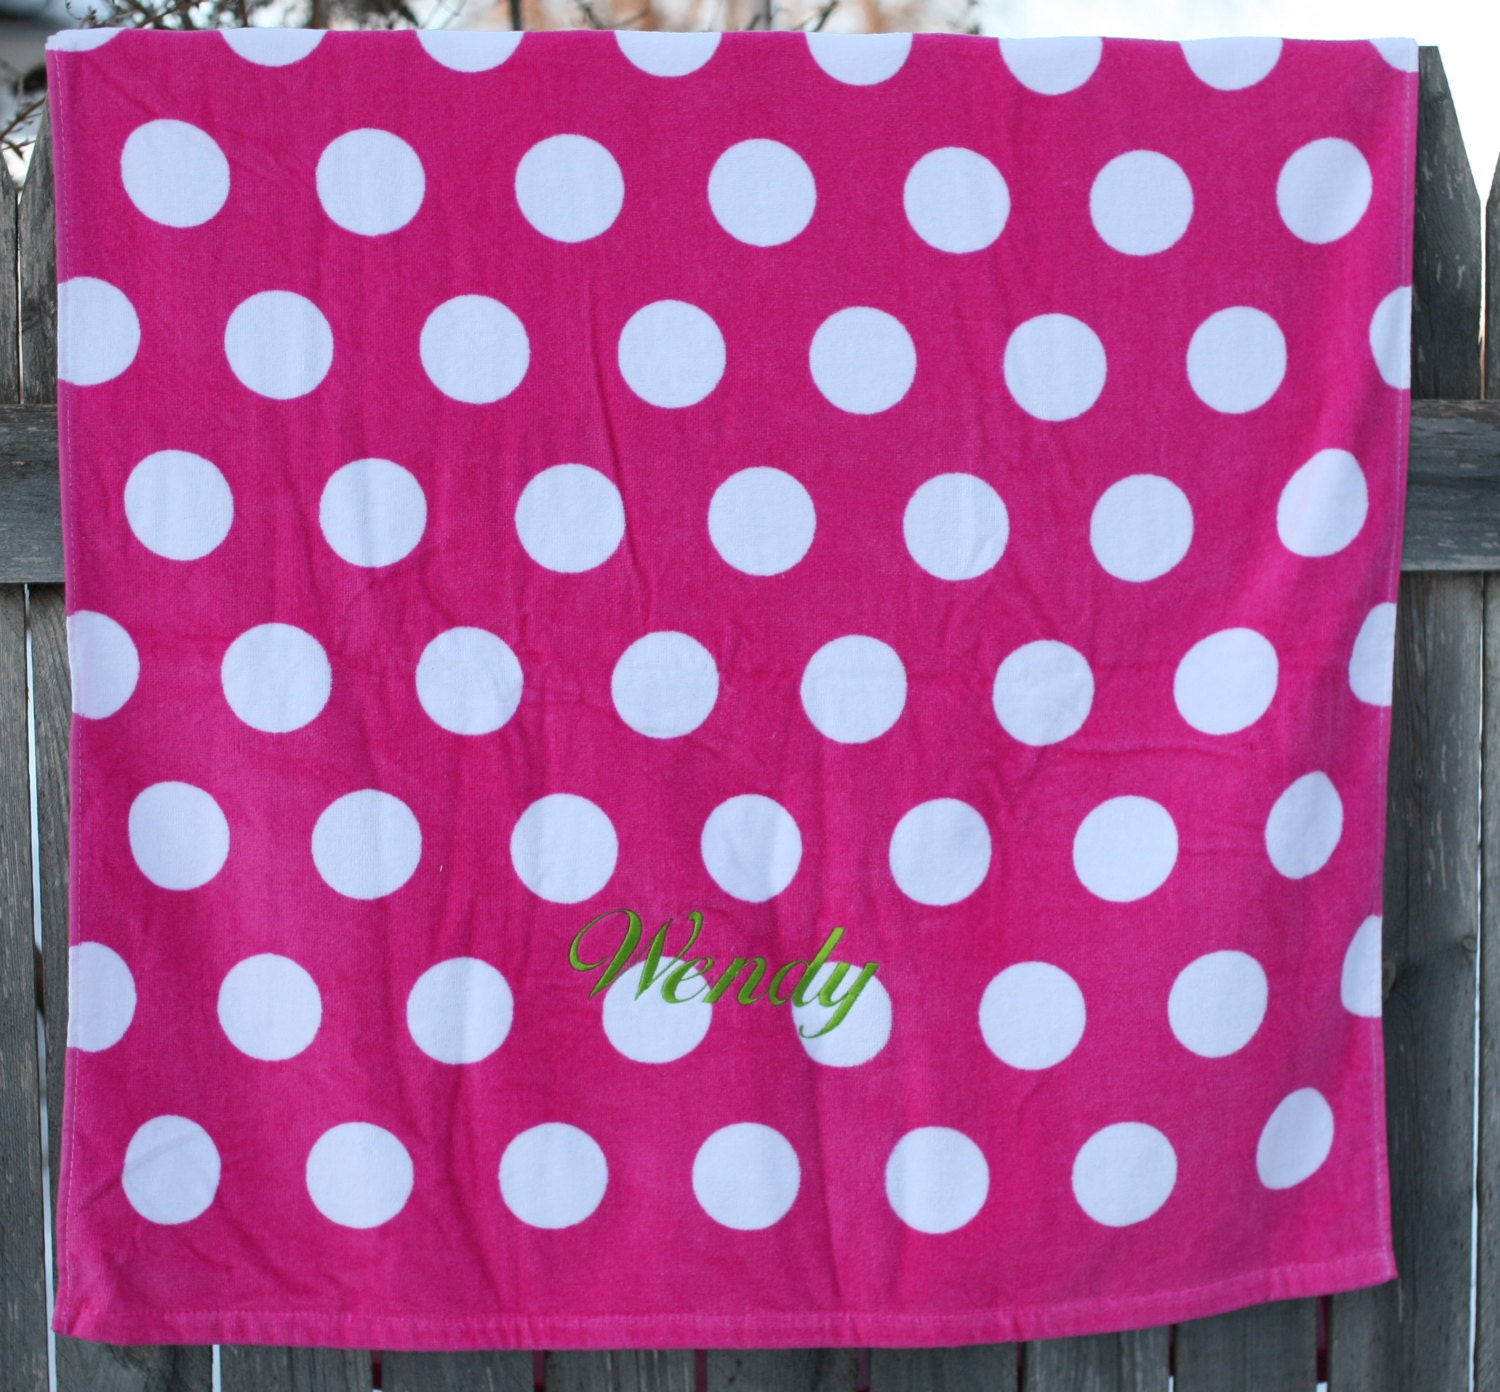 Terry Velour Beach Towel With Polka Dots PERSONALIZED Just